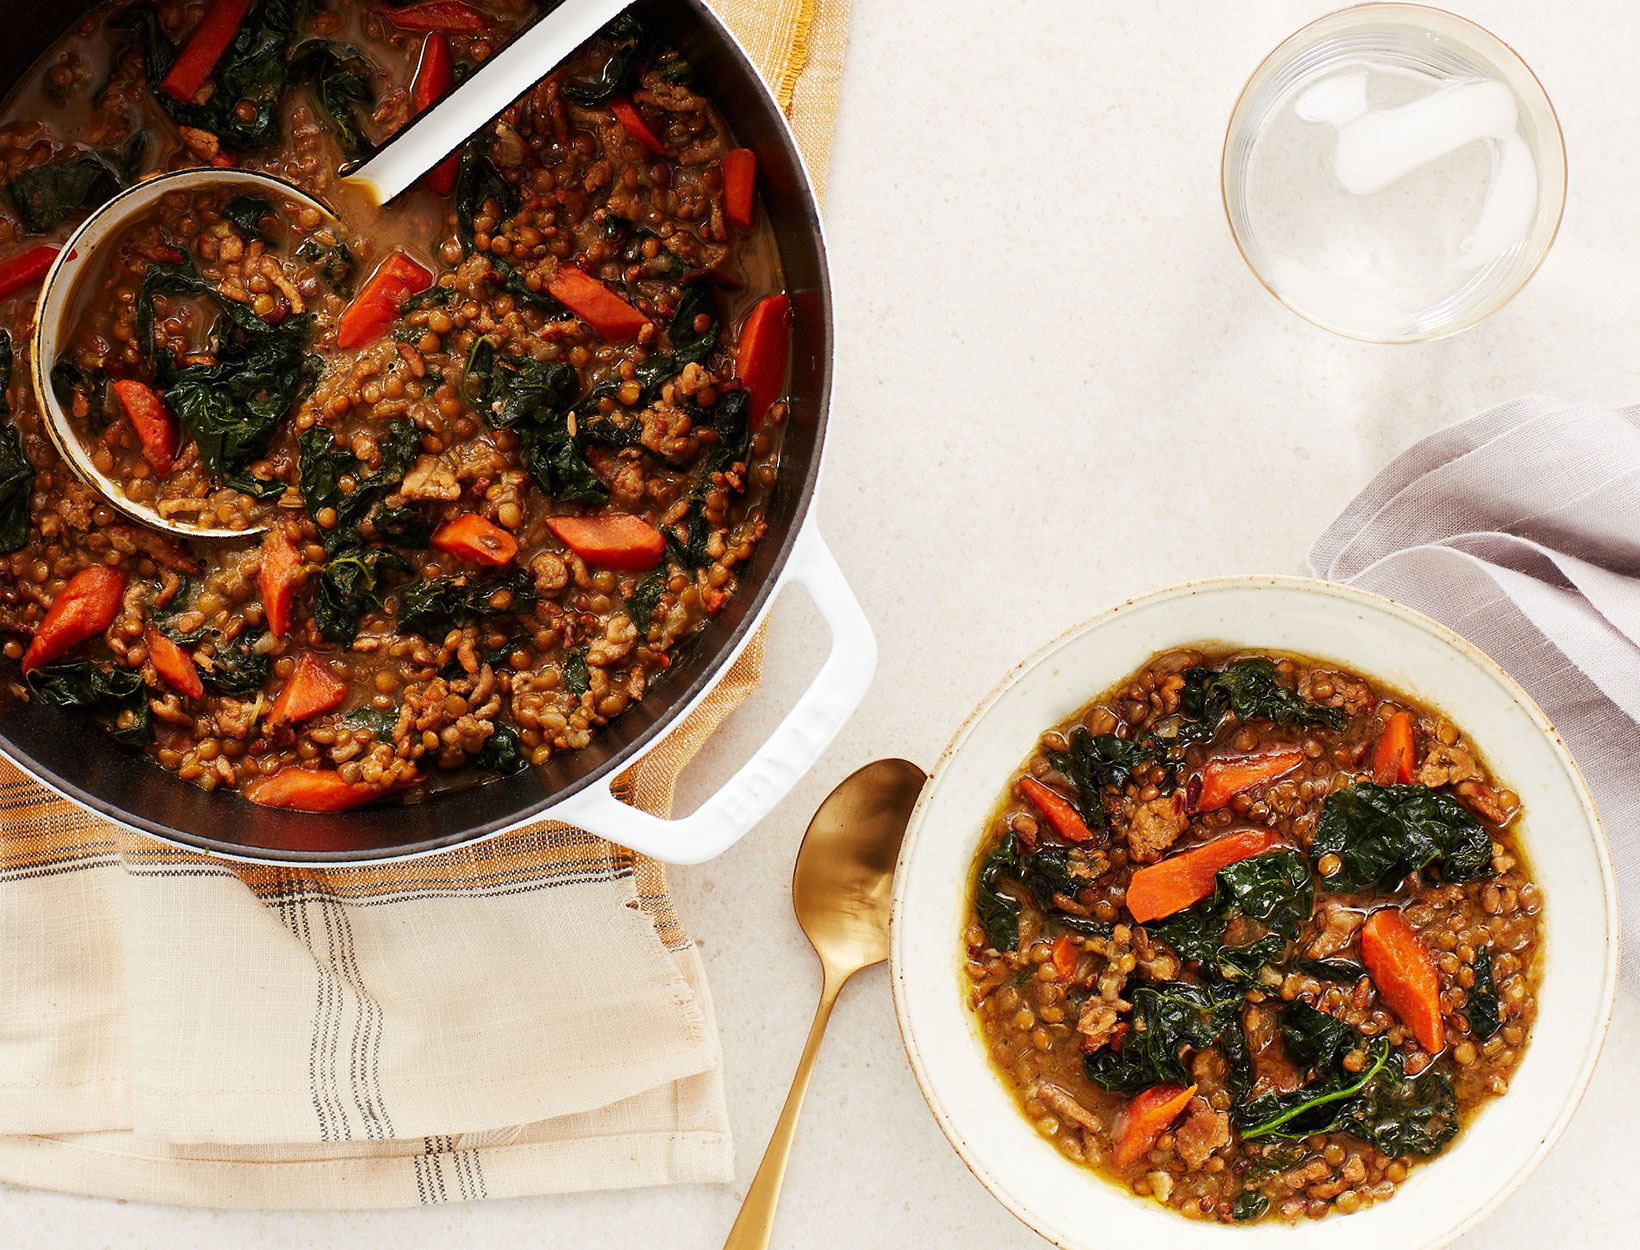 Lentil and Chicken Sausage Stew with Kale